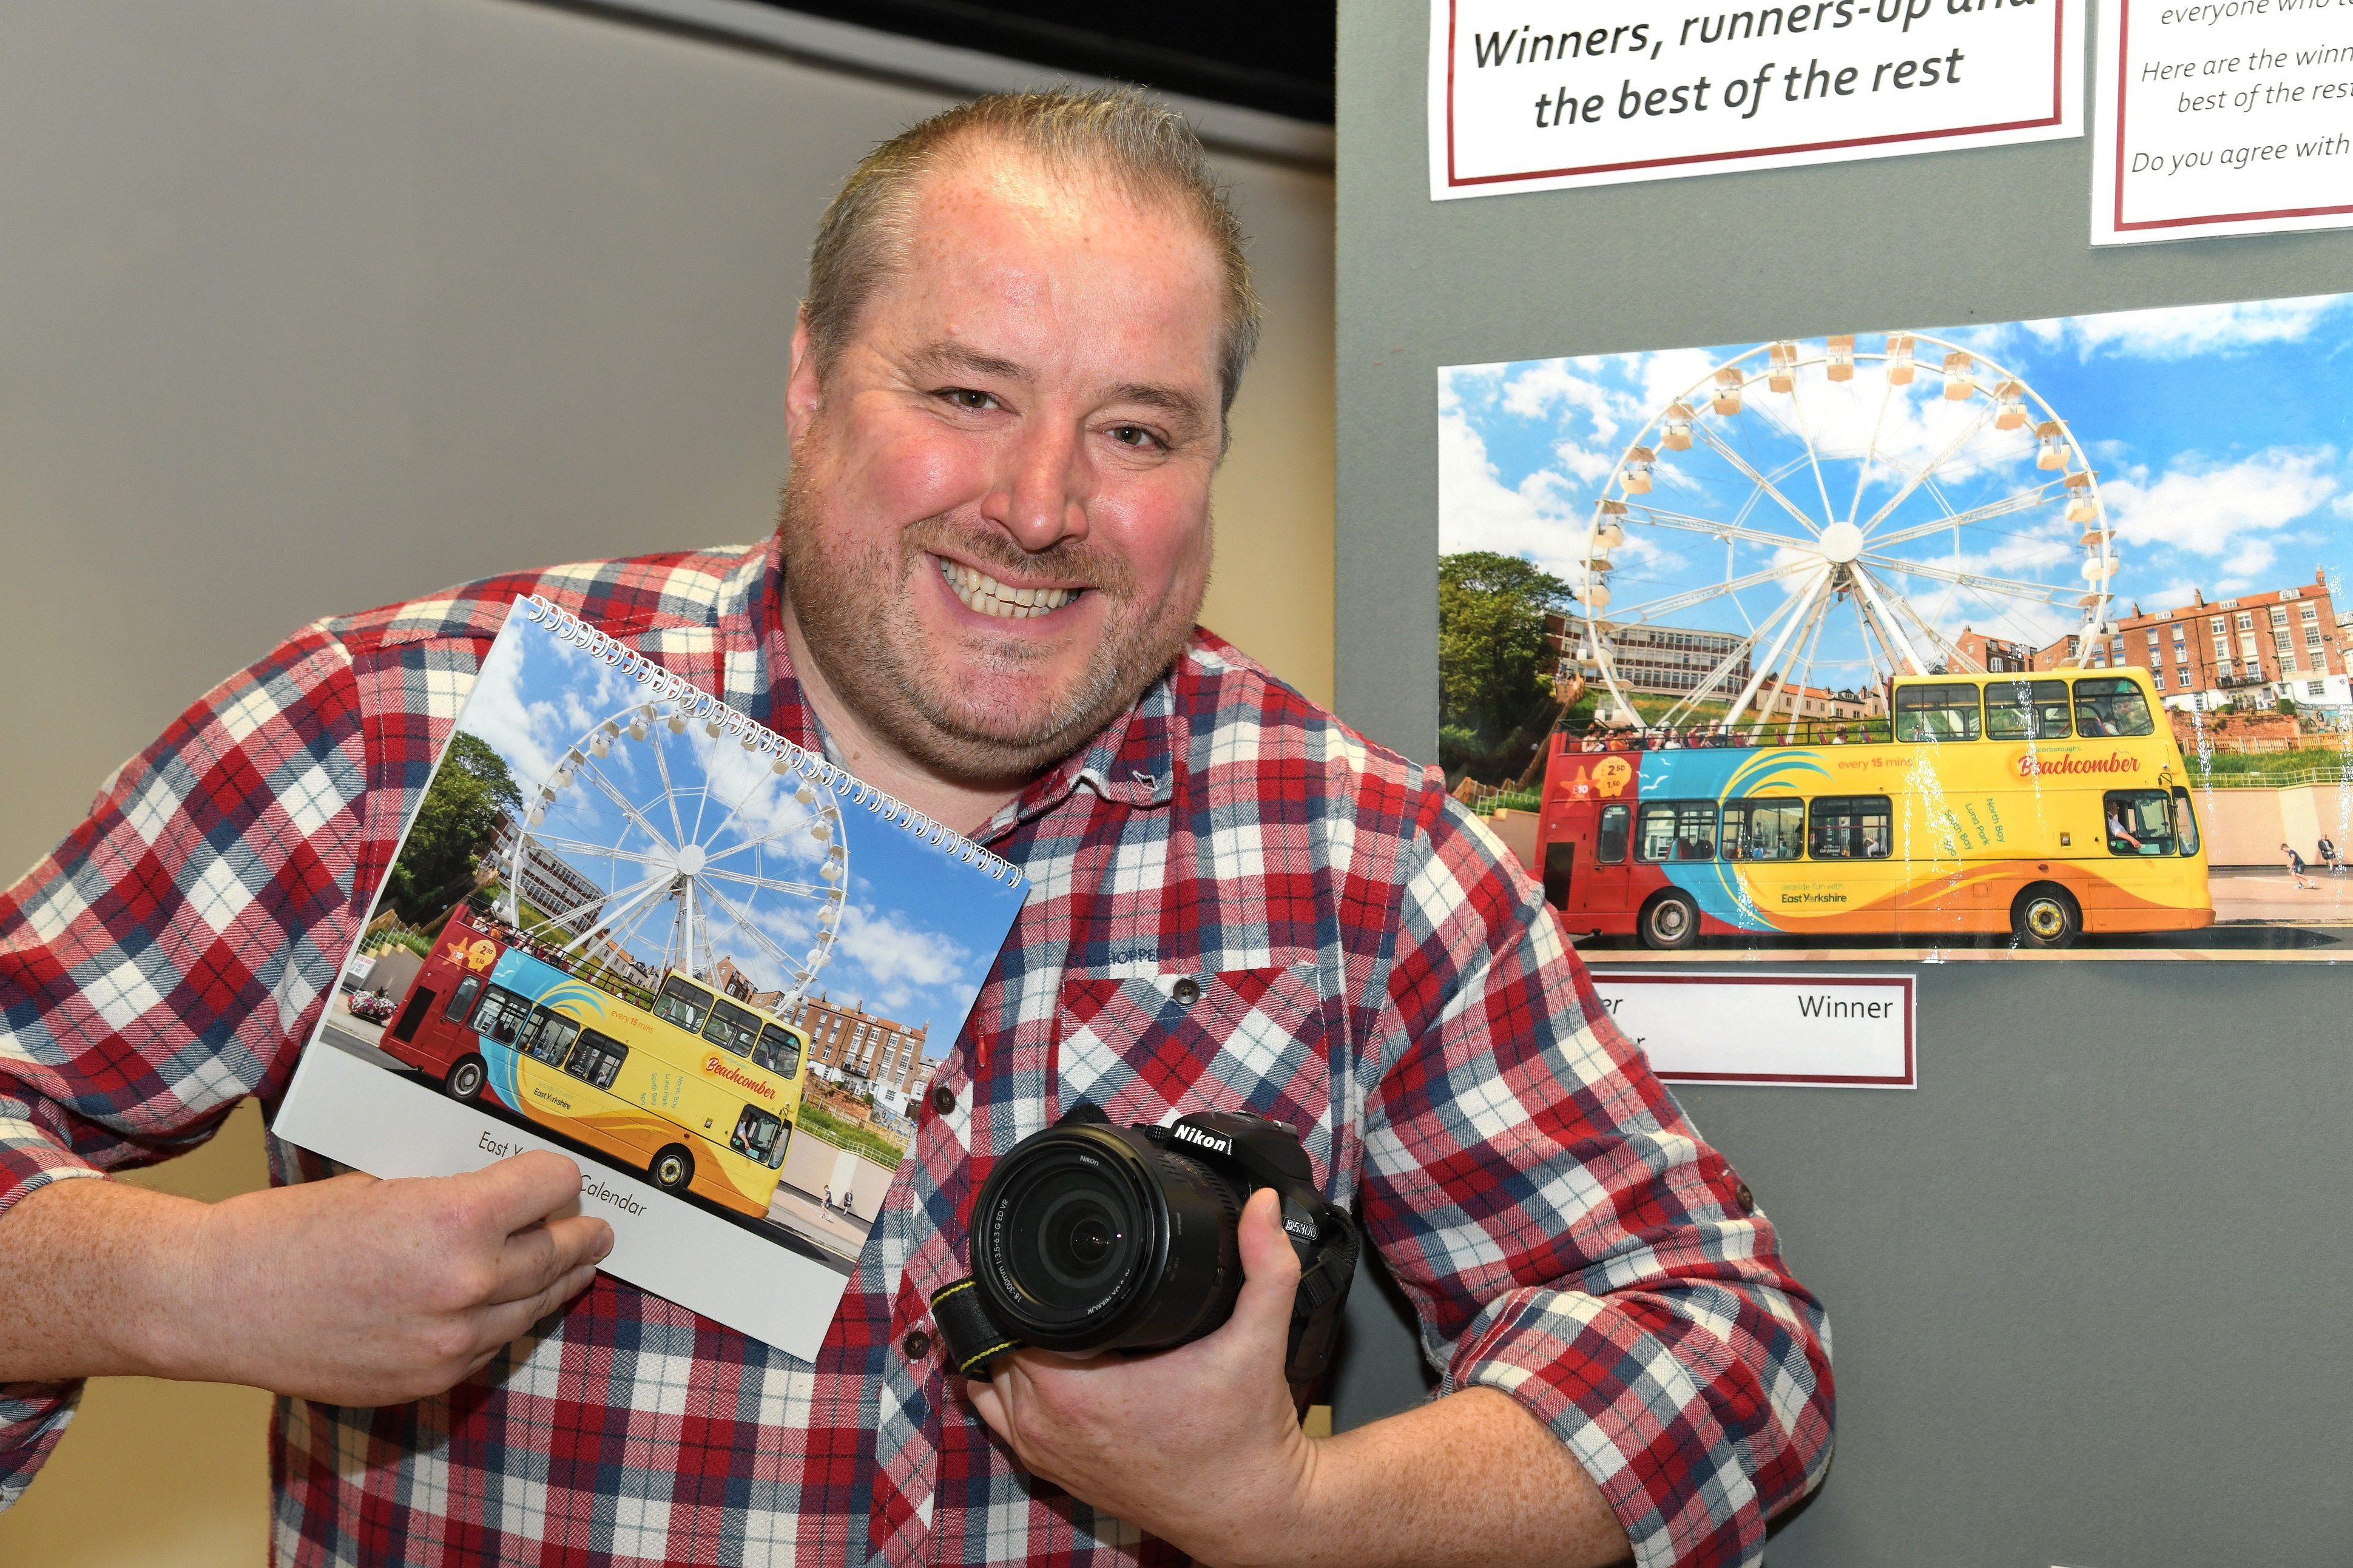 A man in a checked shirt holds a camera and a copy of his photograph, with a photograph exhibition behind him